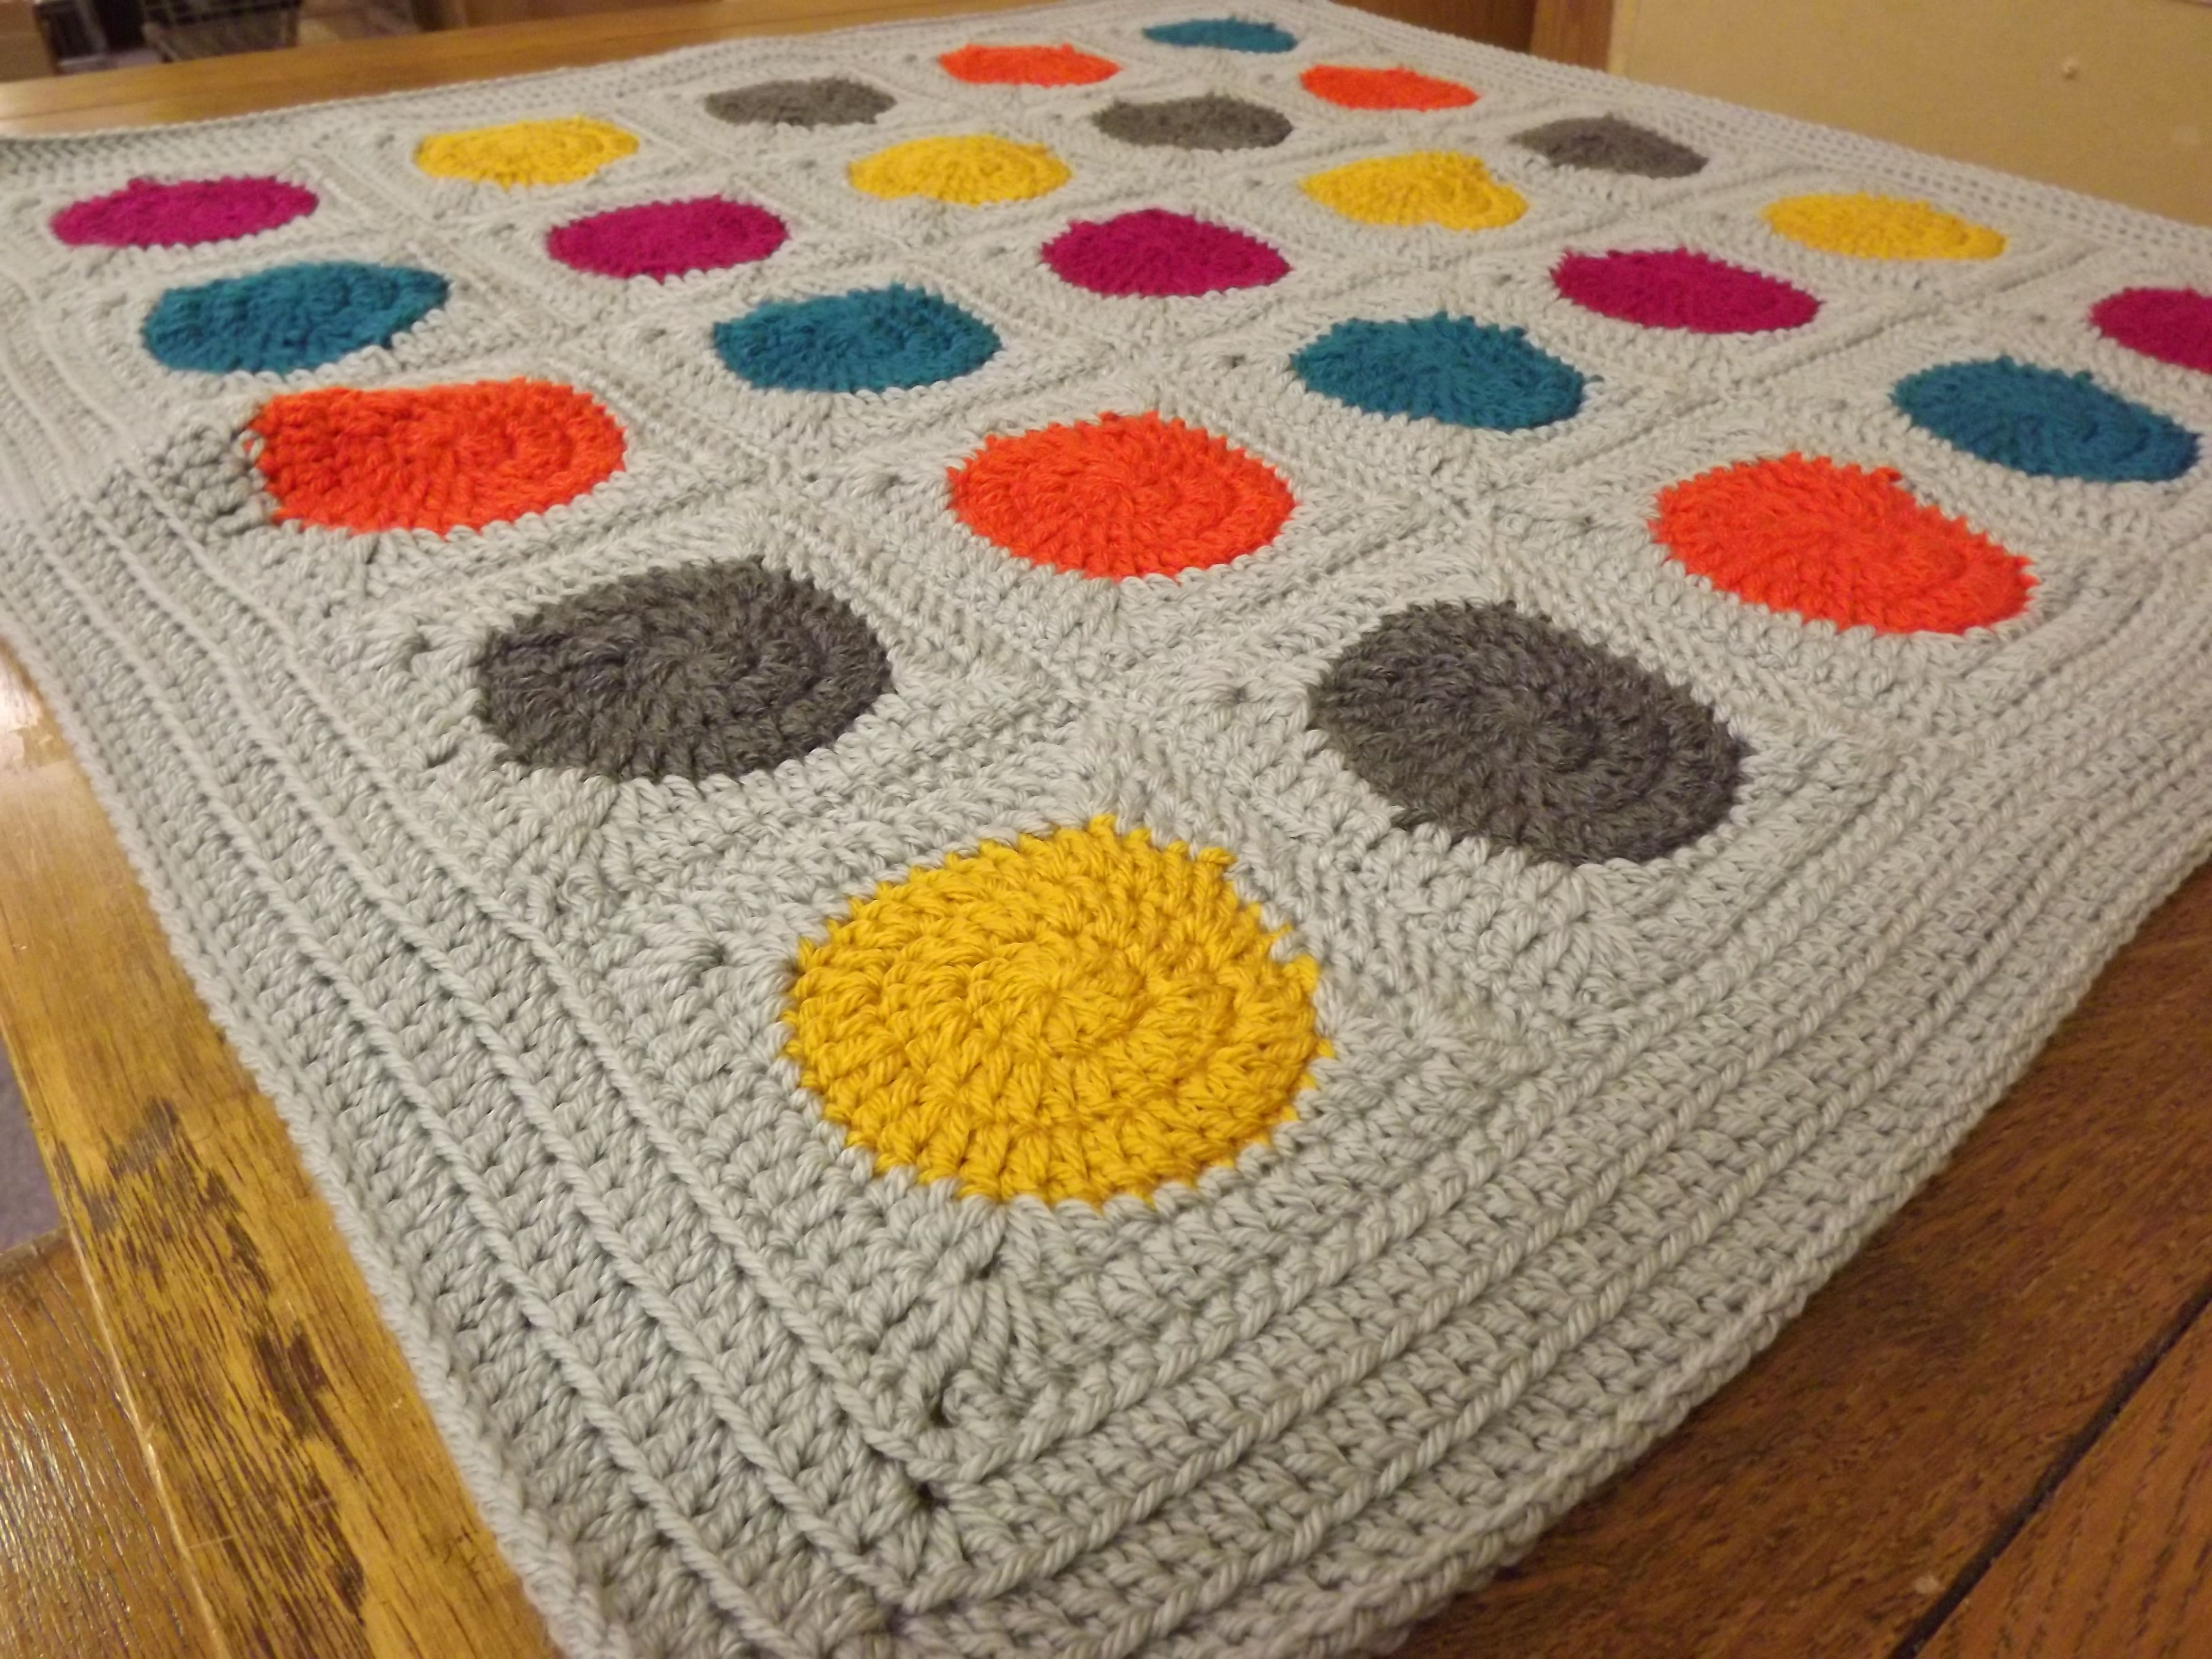 Polka Dot Crocheted Baby Blanket | Häkeln